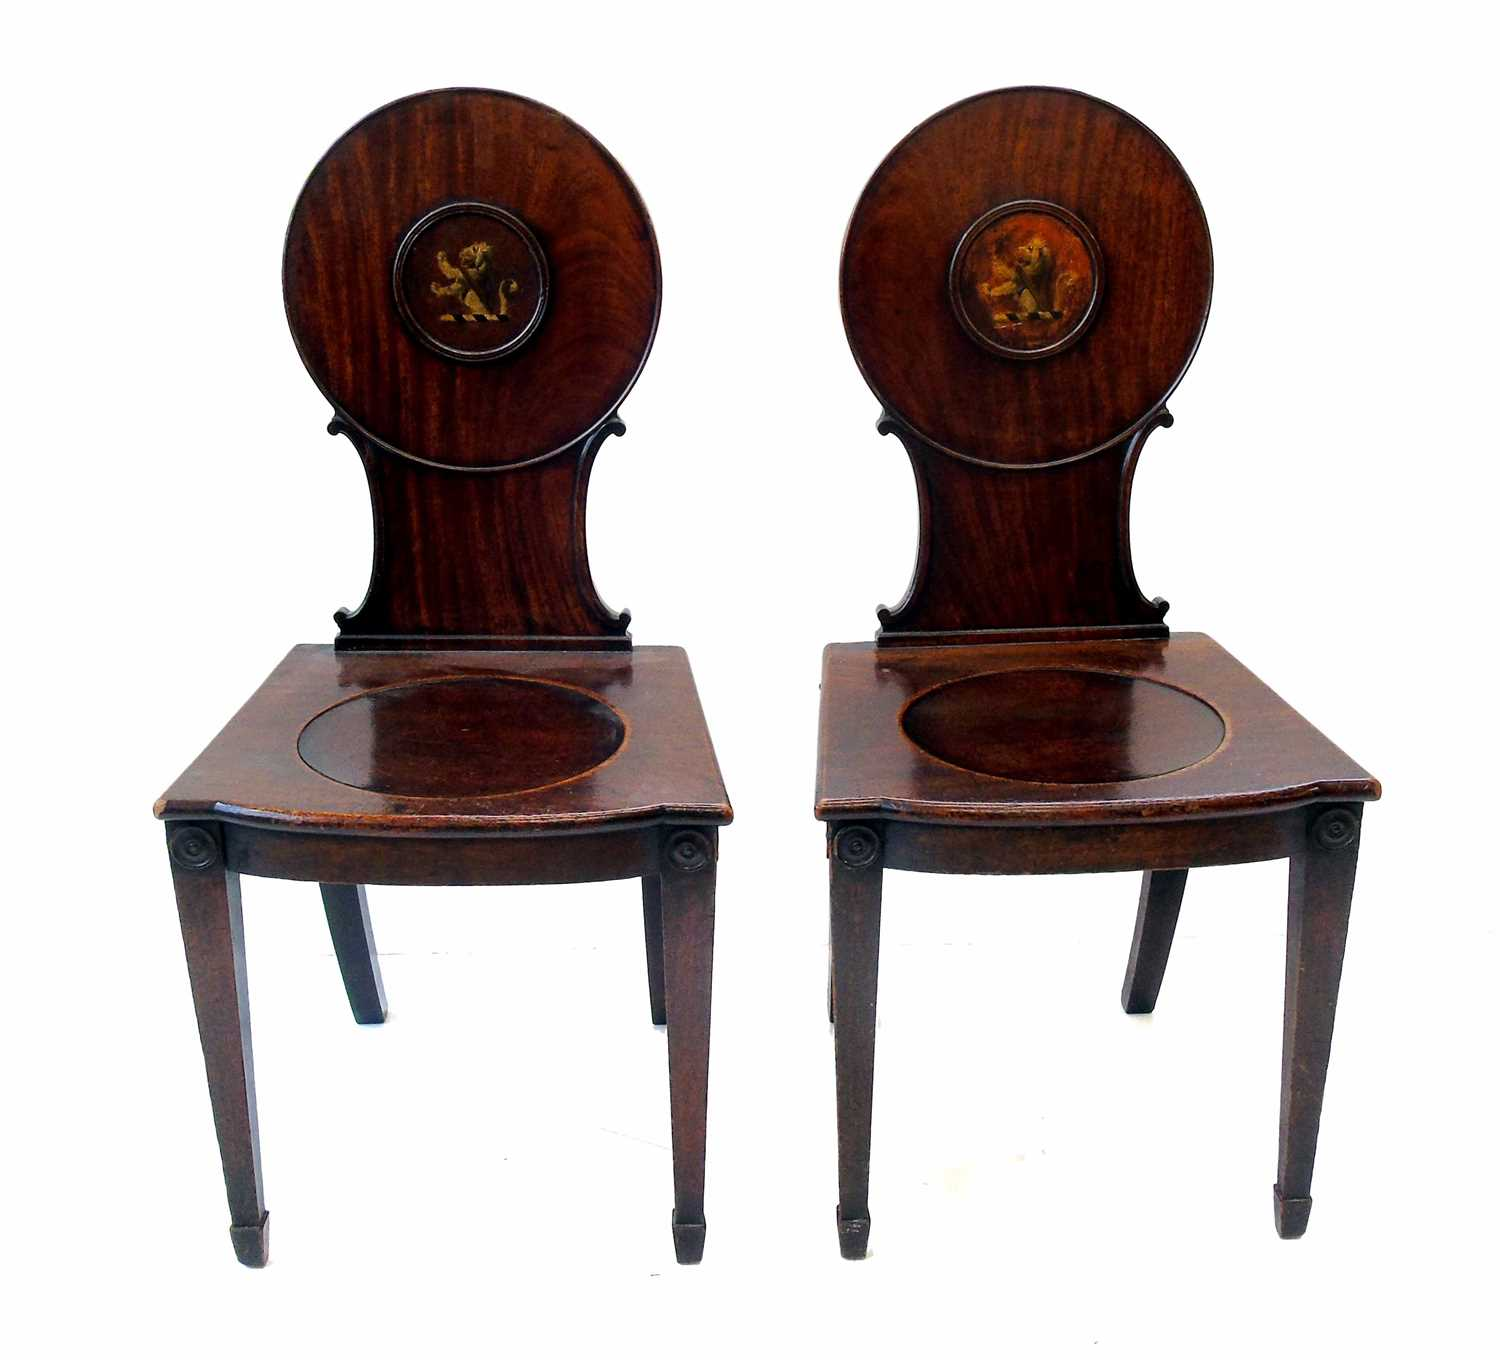 609 - A pair of George III mahogany hall chairs